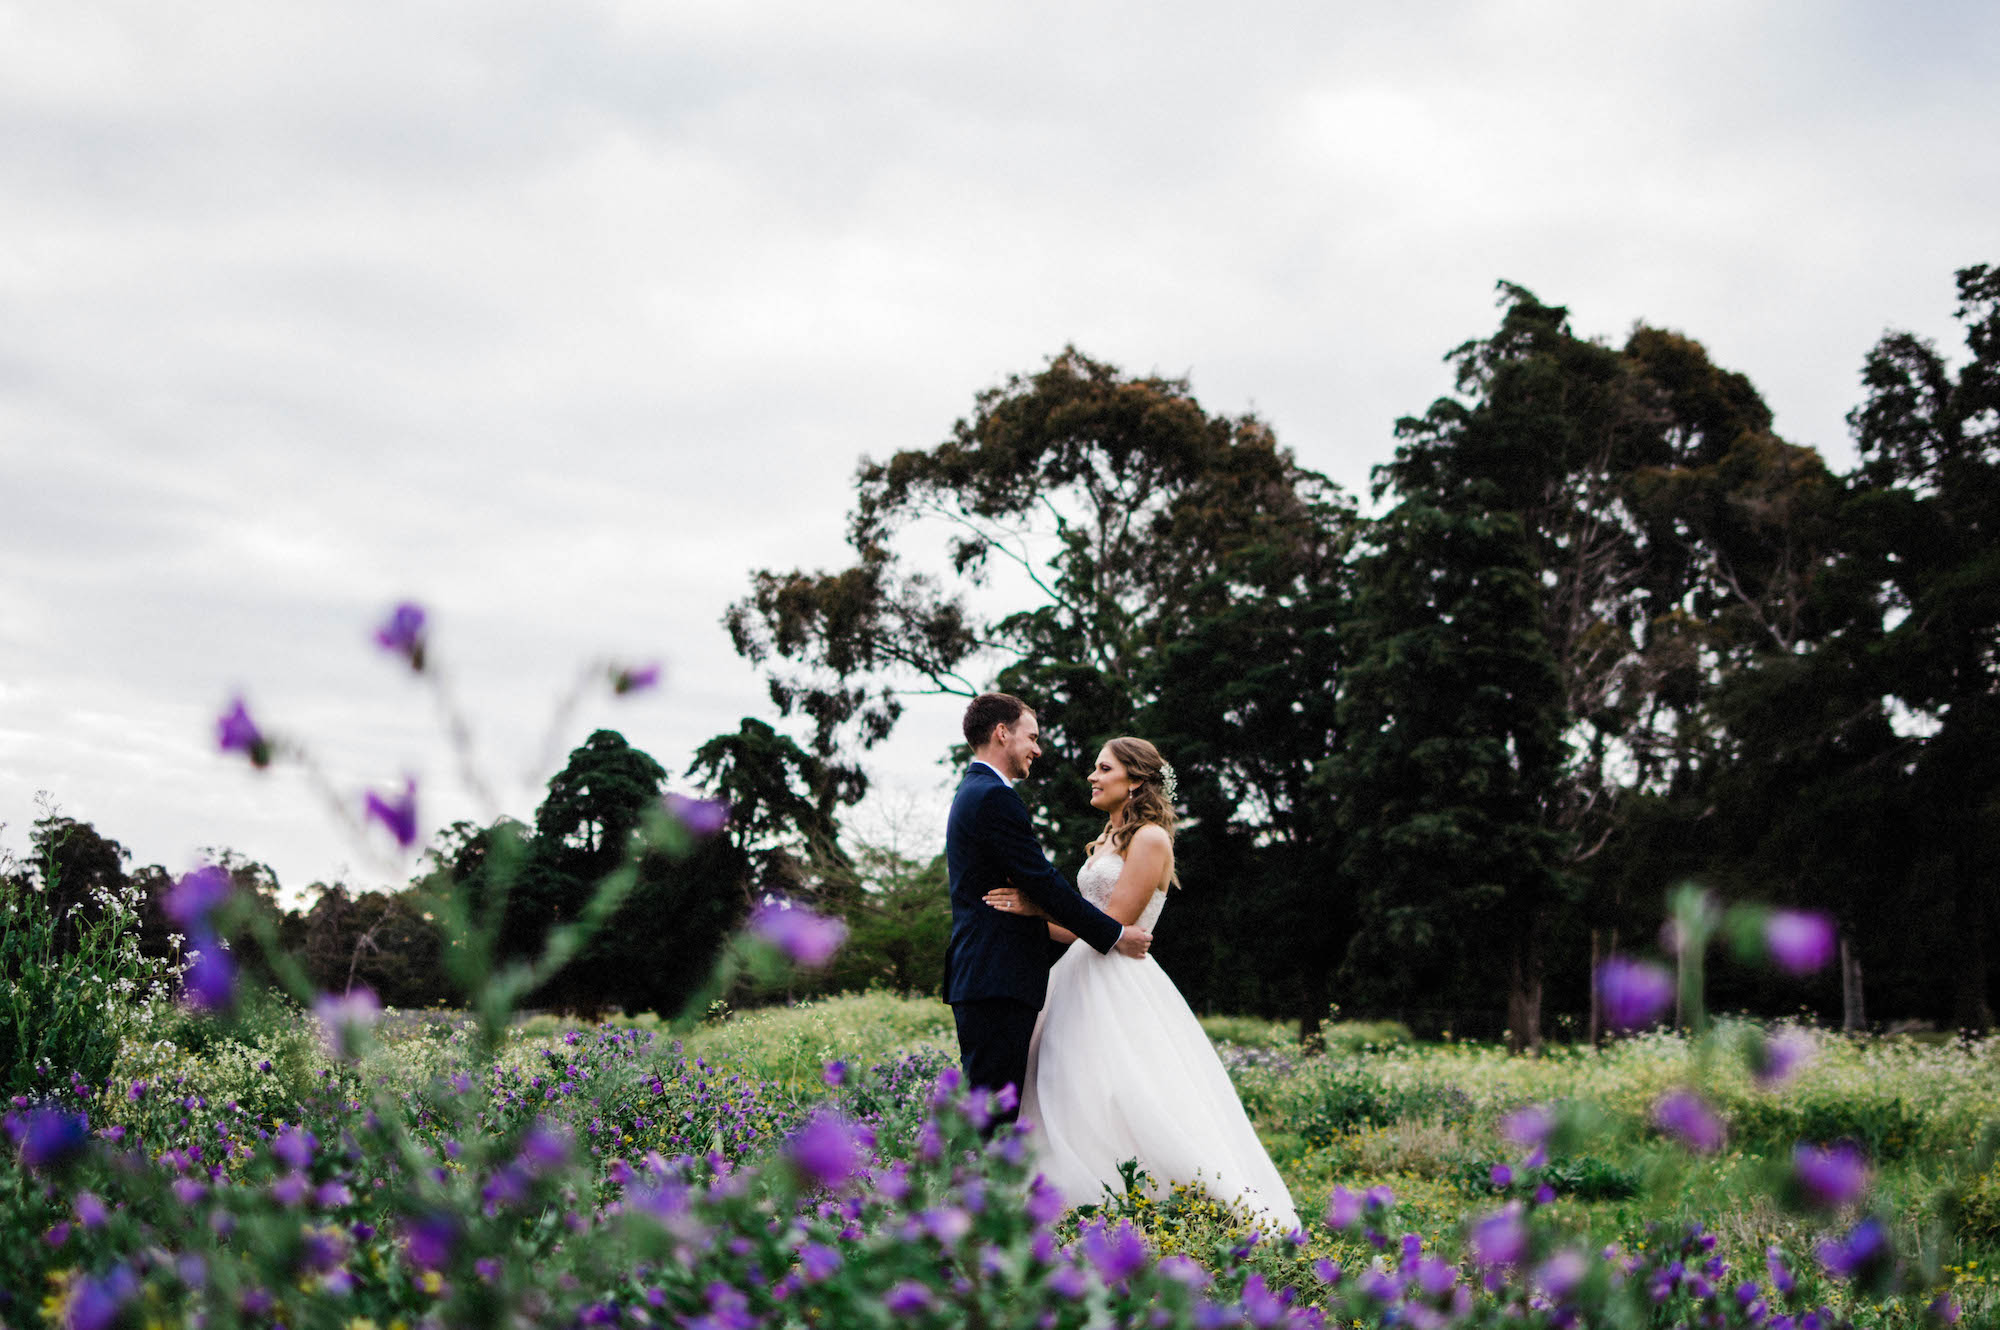 The bride & groom share a moment in a field of flowers at Quarry Farm during their Spring wedding.